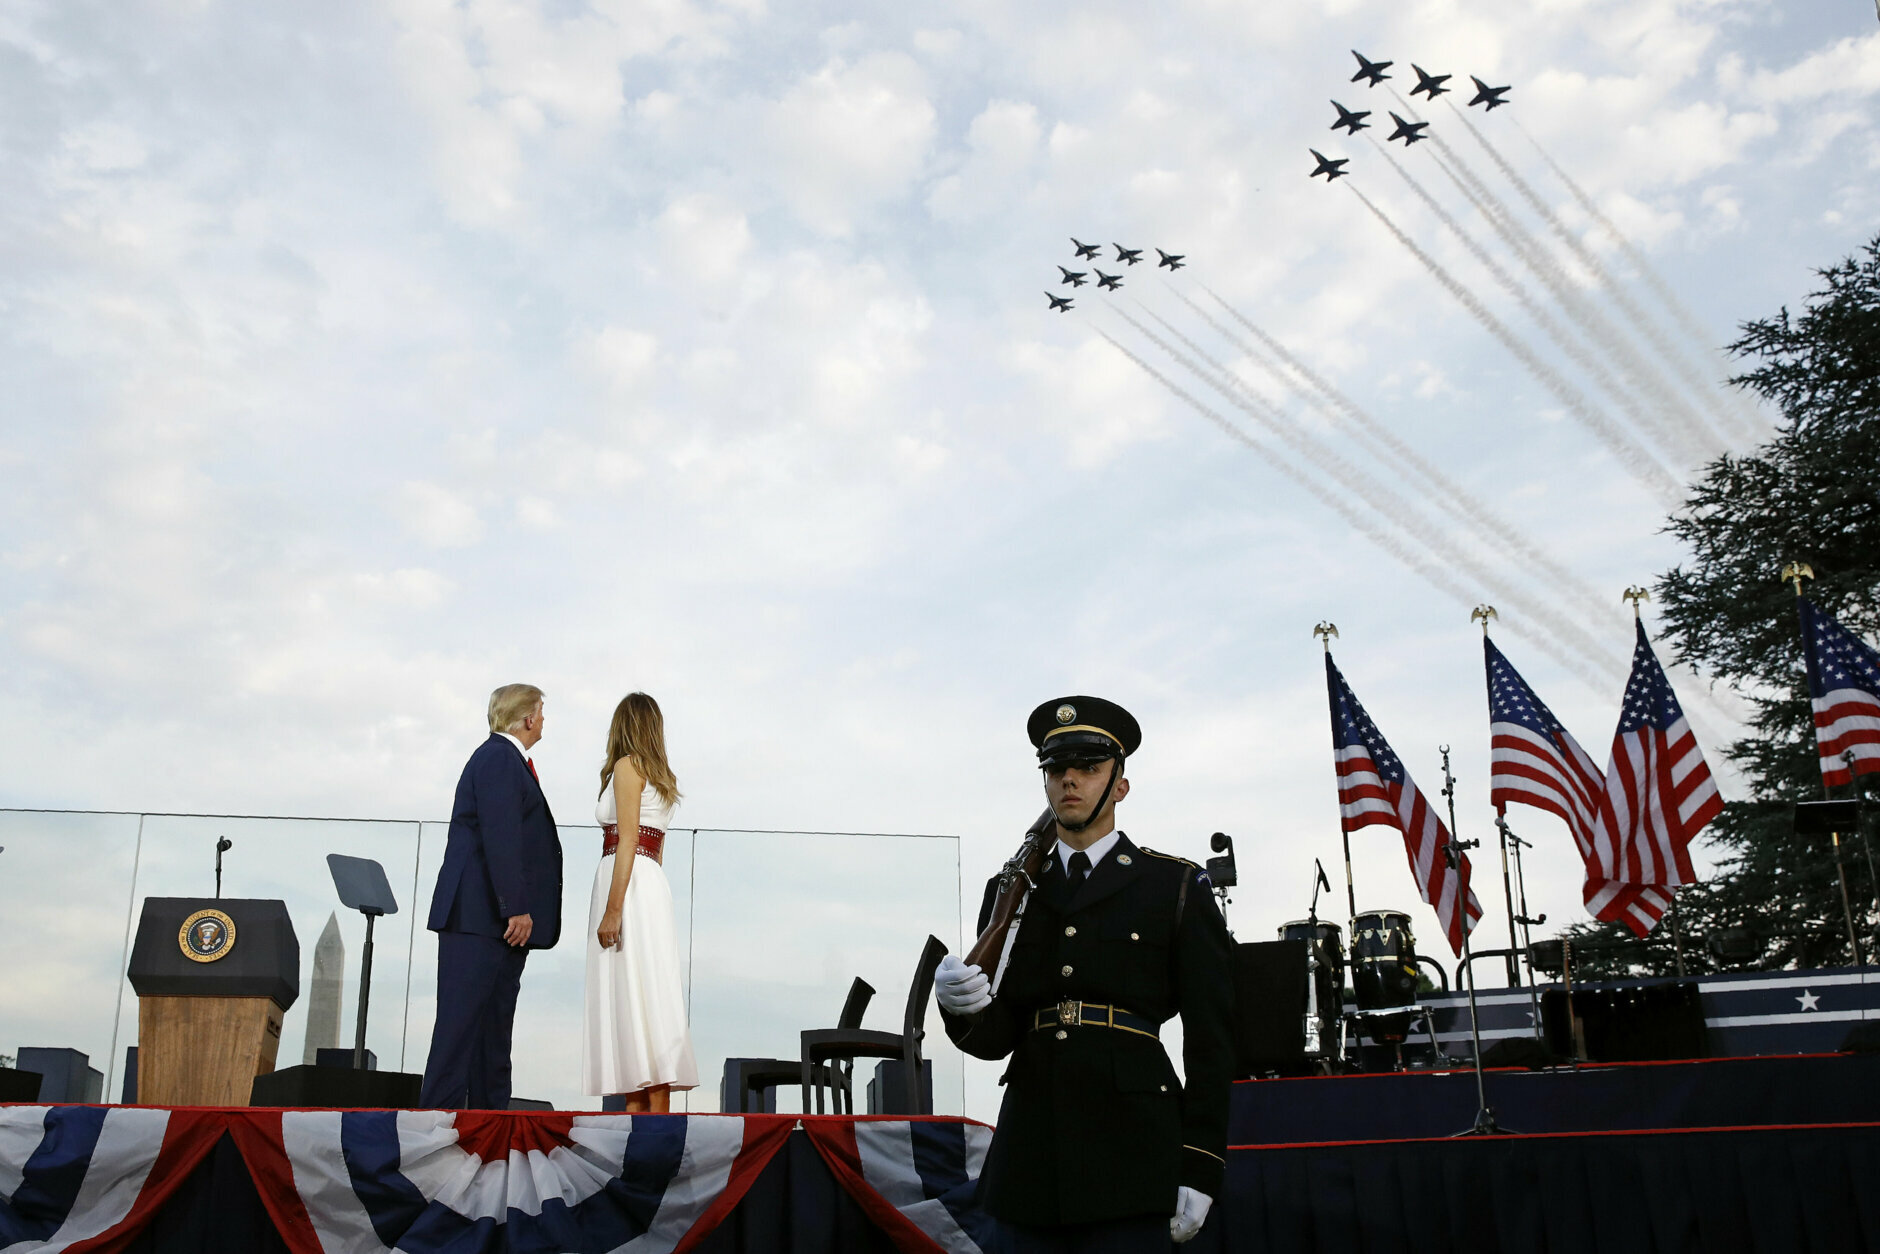 """President Donald Trump and first lady Melania Trump watch as the U.S. Air Force Thunderbirds and U.S. Navy Blue Angels perform a flyover during a """"Salute to America"""" event on the South Lawn of the White House, Saturday, July 4, 2020, in Washington. (AP Photo/Patrick Semansky)"""